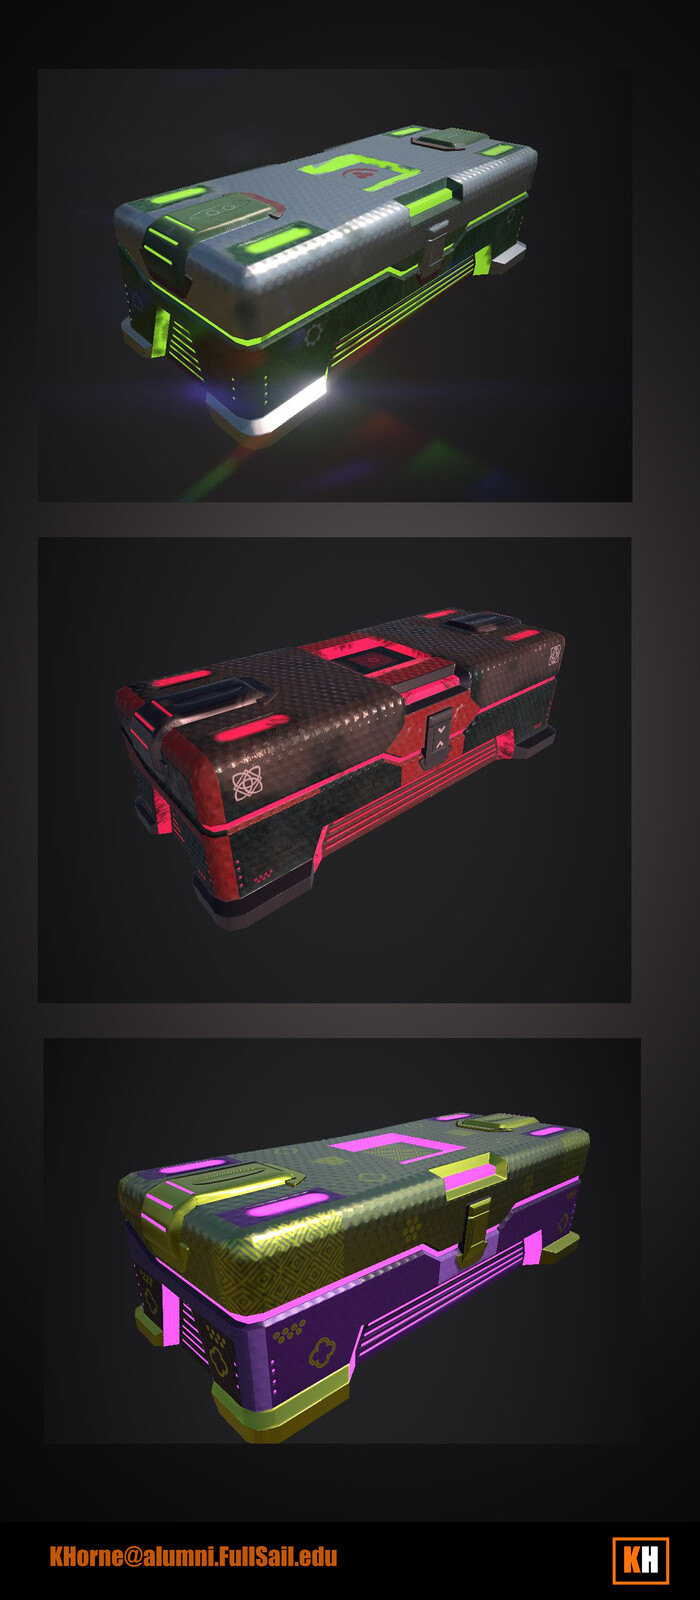 Crate material and texture variations and UV, texturing in Substance Painter. Model provided